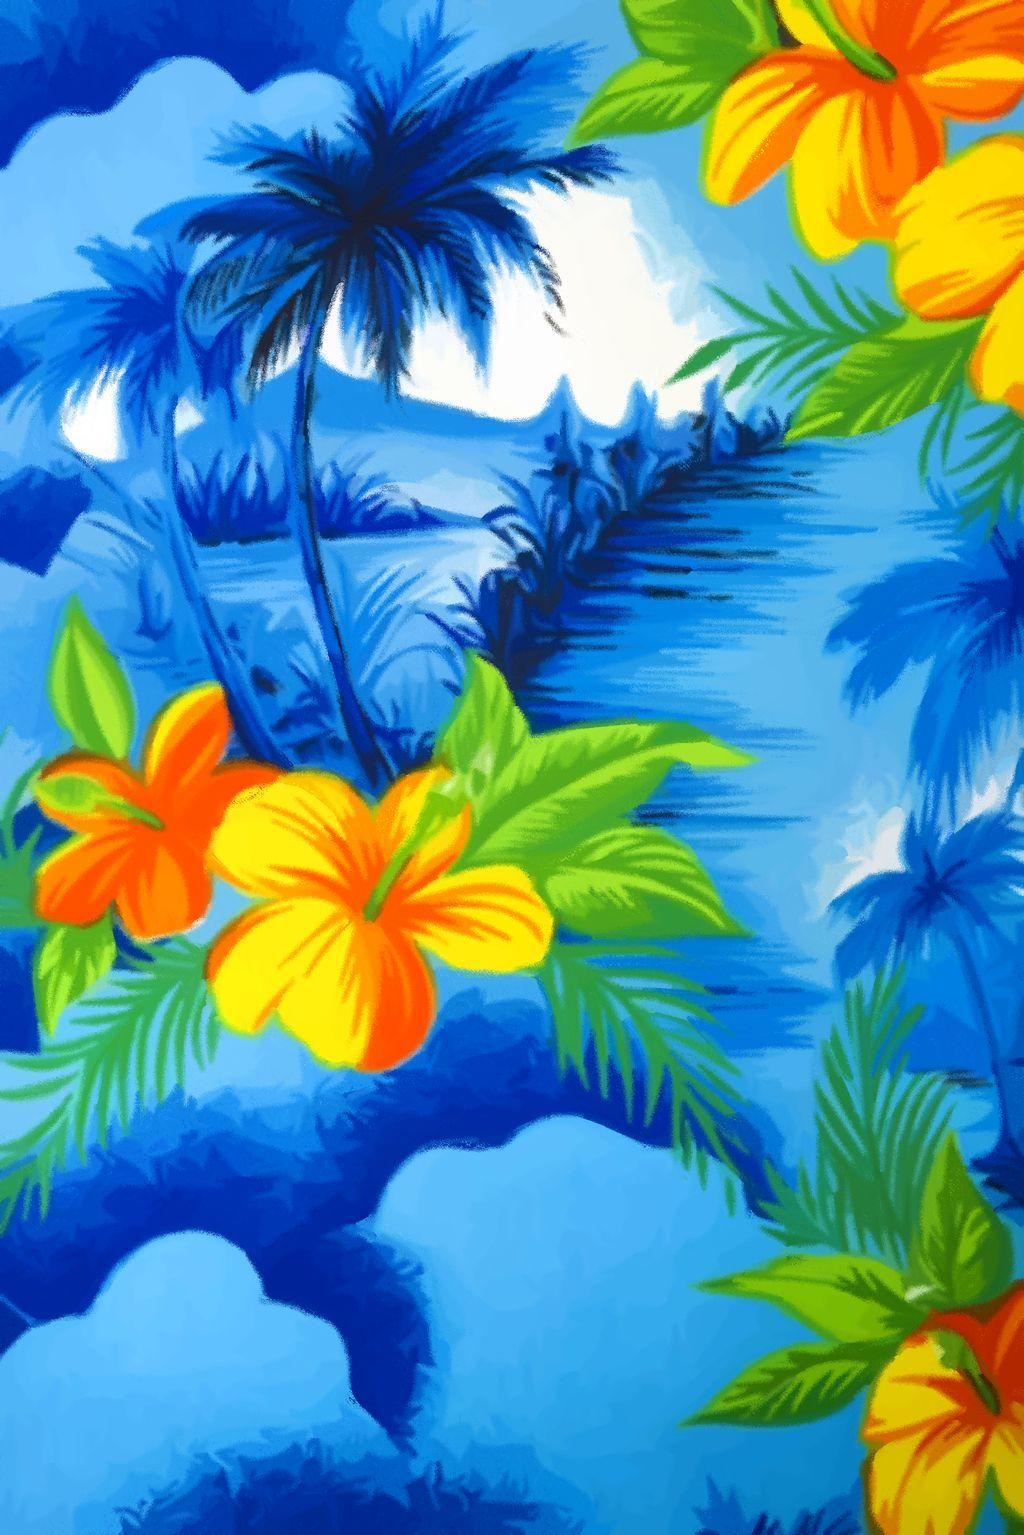 Hawaiian Flowers Wallpaper Backgrounds – WallpaperSafari